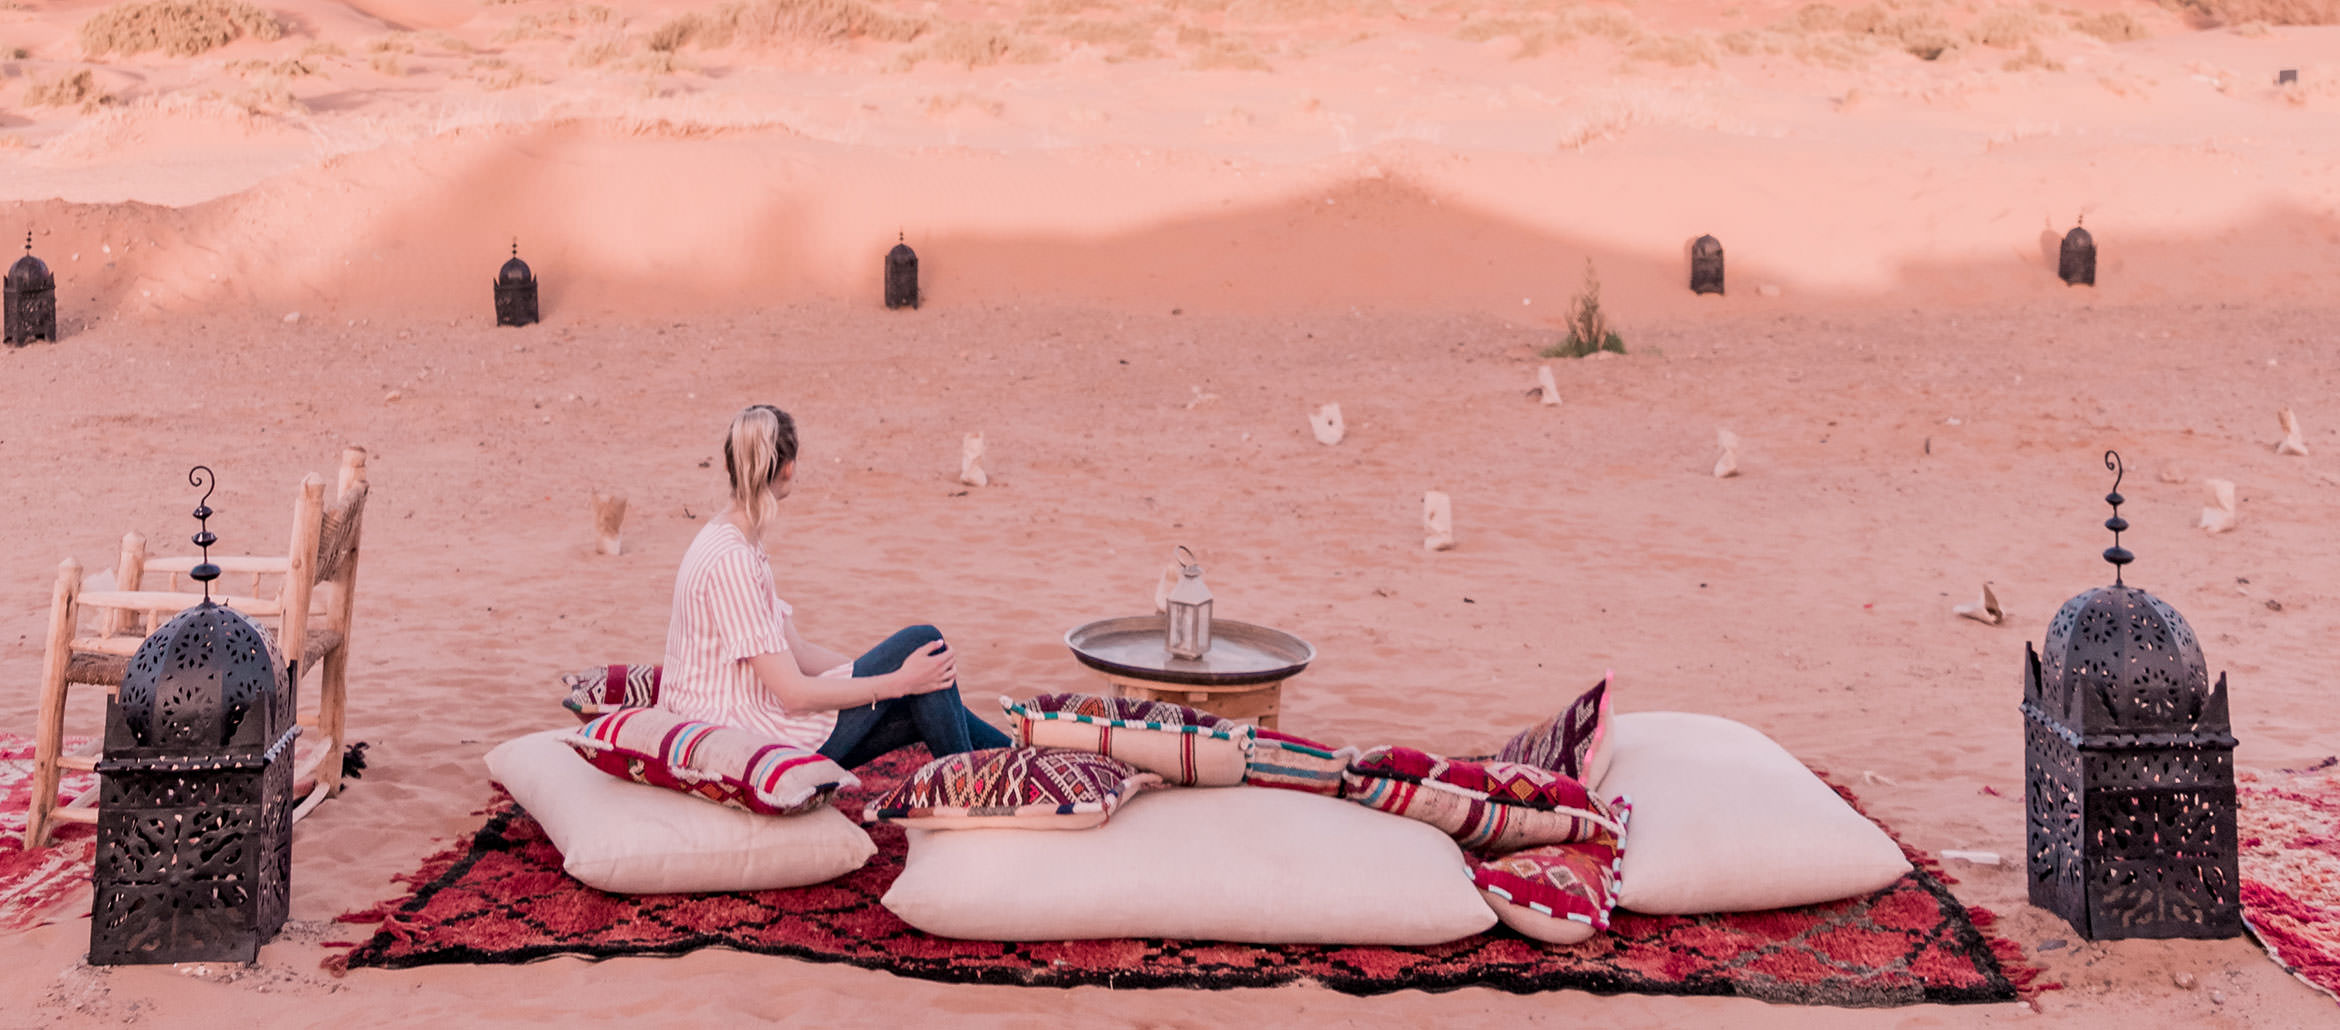 Sleeping Under the Stars: Glamping in the Sahara Desert